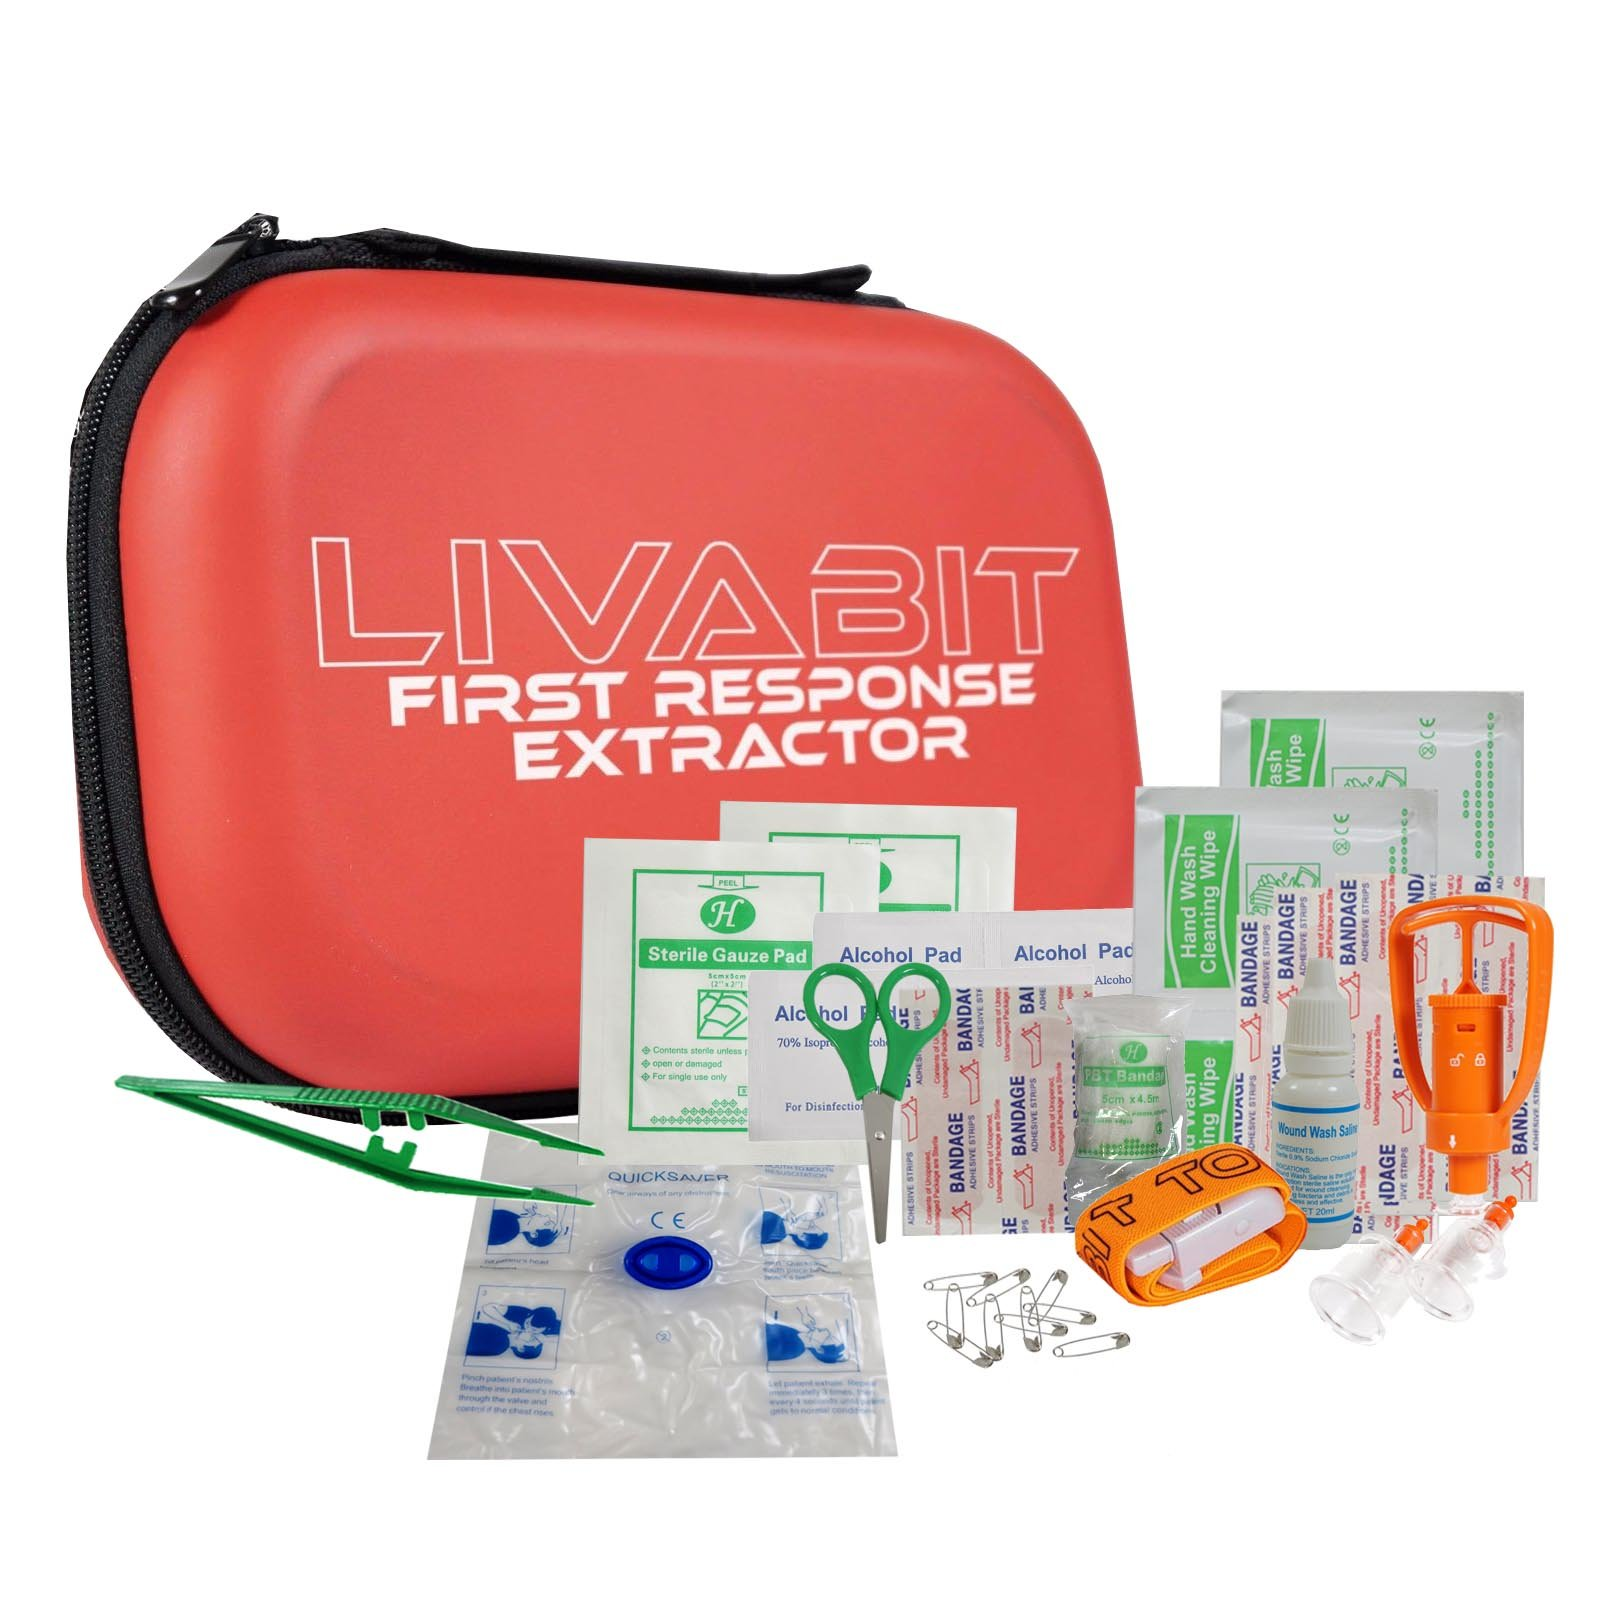 LIVABIT First Response Extractor Venom Poison Bite Extraction Pump Portable Hiking Outdoor First Aid CPR Safety Tool Kit